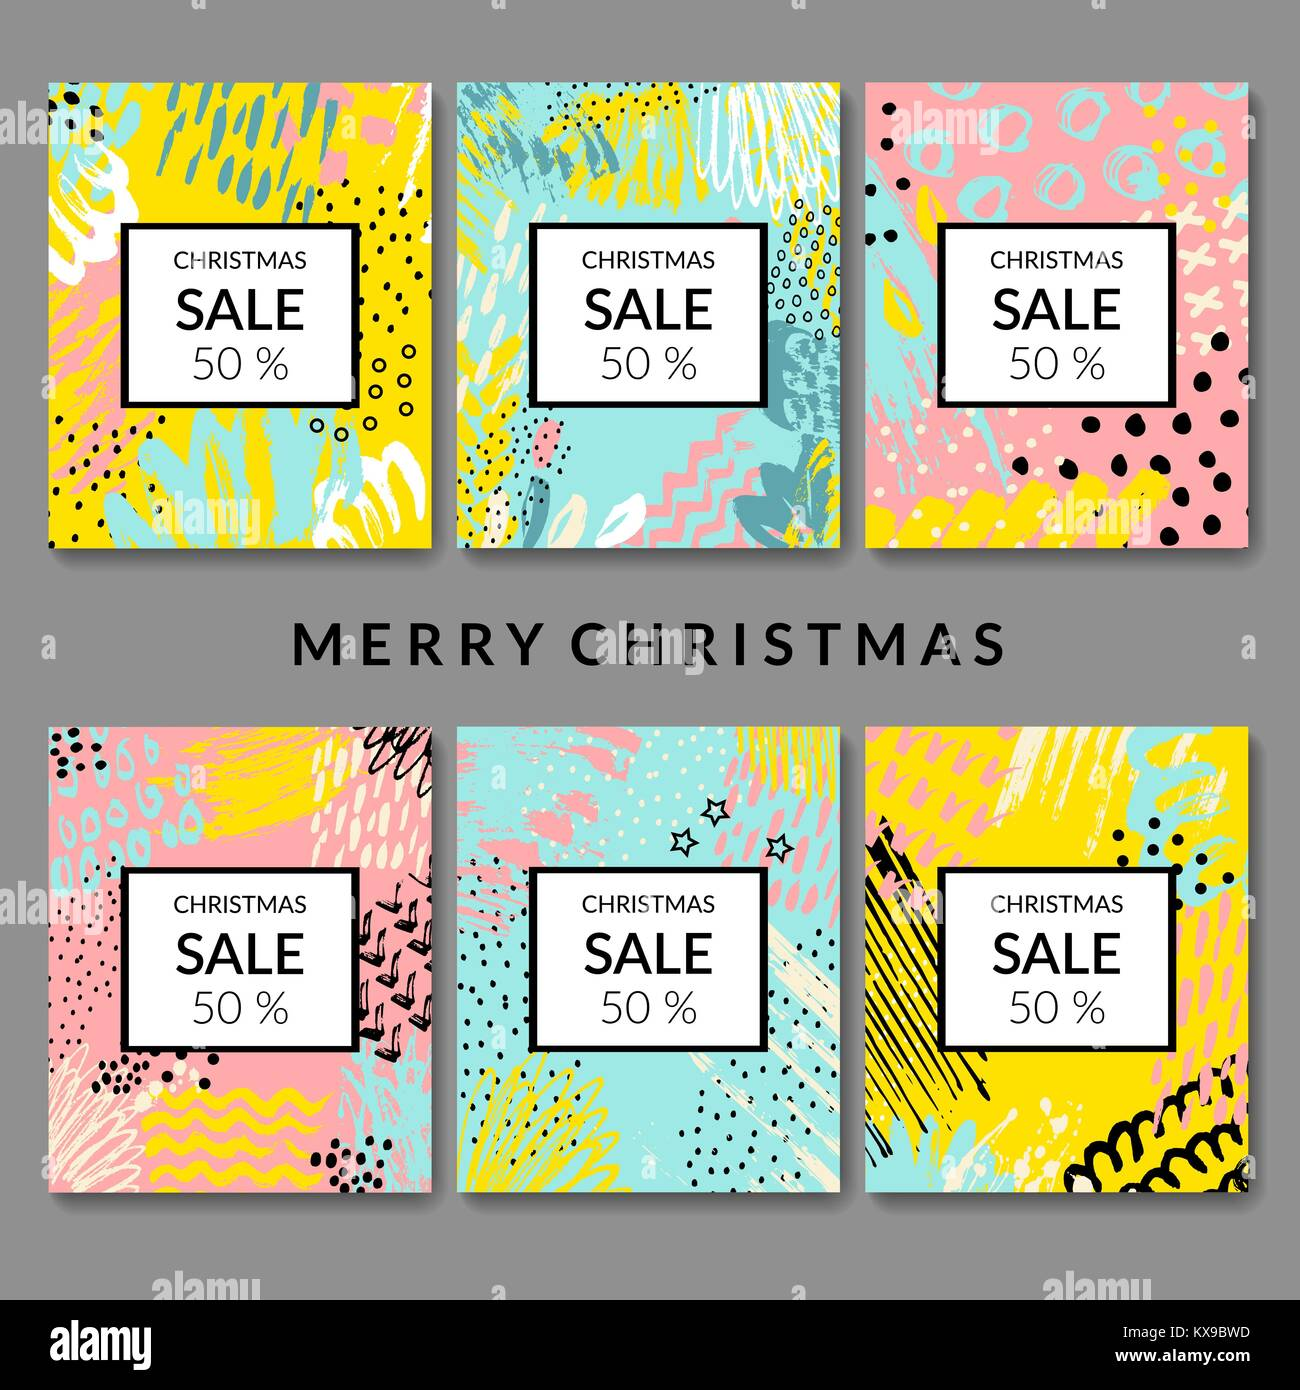 Christmas abstract backgrounds. Sale. - Stock Image